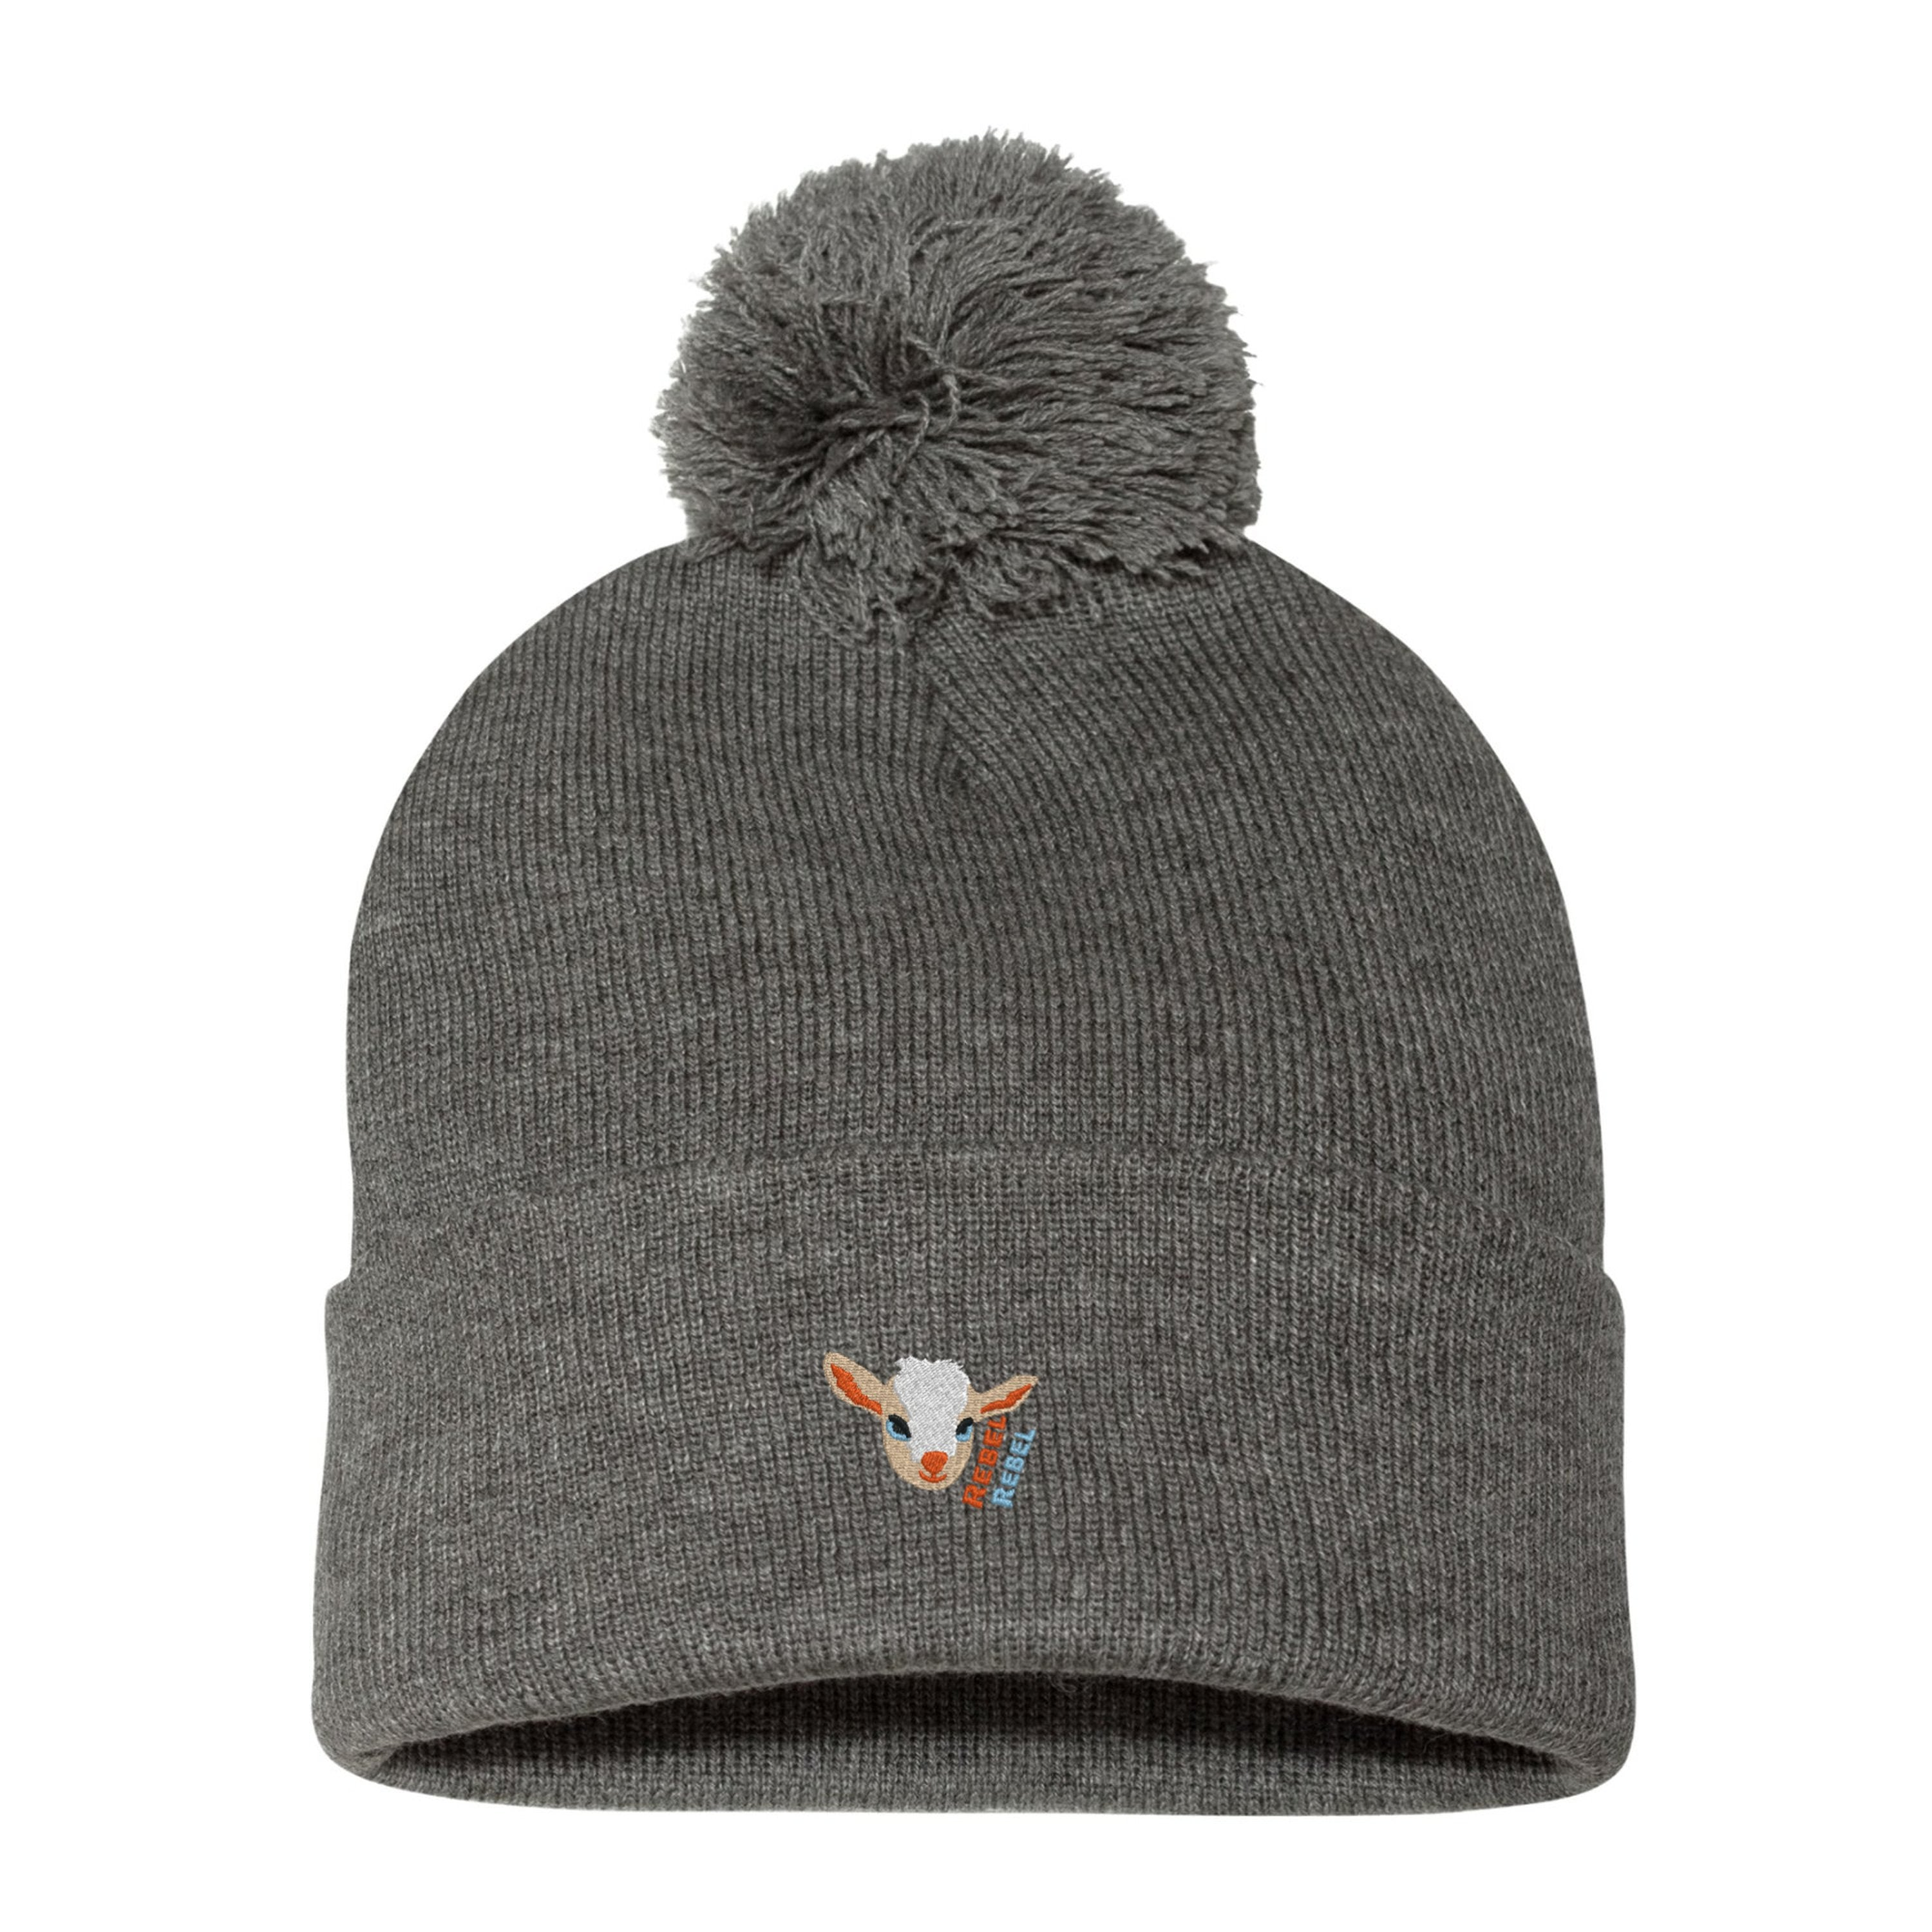 Scout the Rebel Rebel Pom Pom Beanie